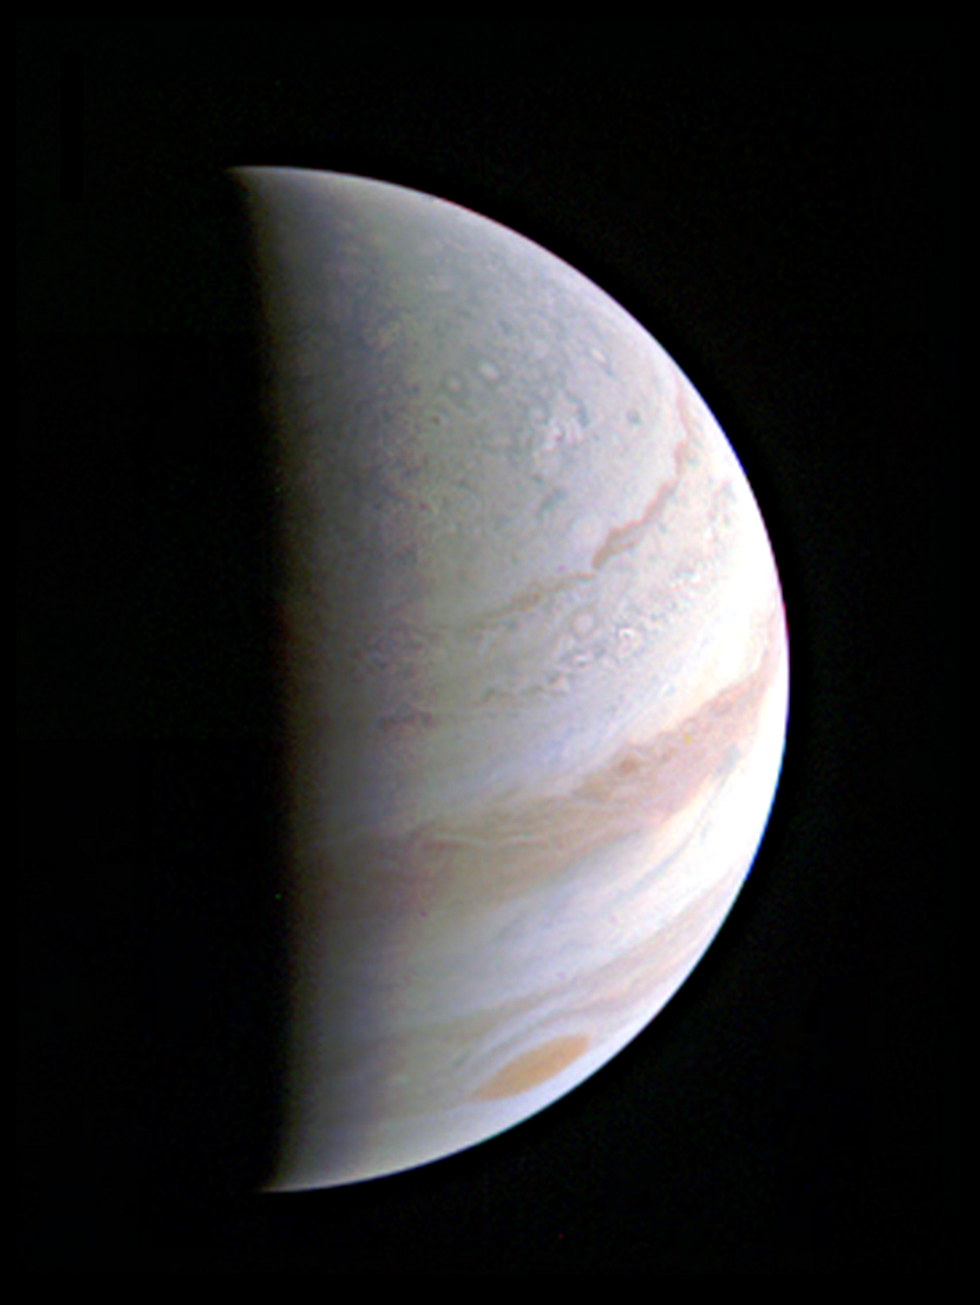 NASA's Juno spacecraft successfully completed the first of 36 scheduled orbital flybys of Jupiter recently. In this view, Jupiter's north polar region is coming into view as the spacecraft approaches the giant planet. This view of the Jovian planet was taken on 8/27/16, when Juno was 703,000 kilometers away. (NASA/JPL-Caltech/SwRI/MSSS)